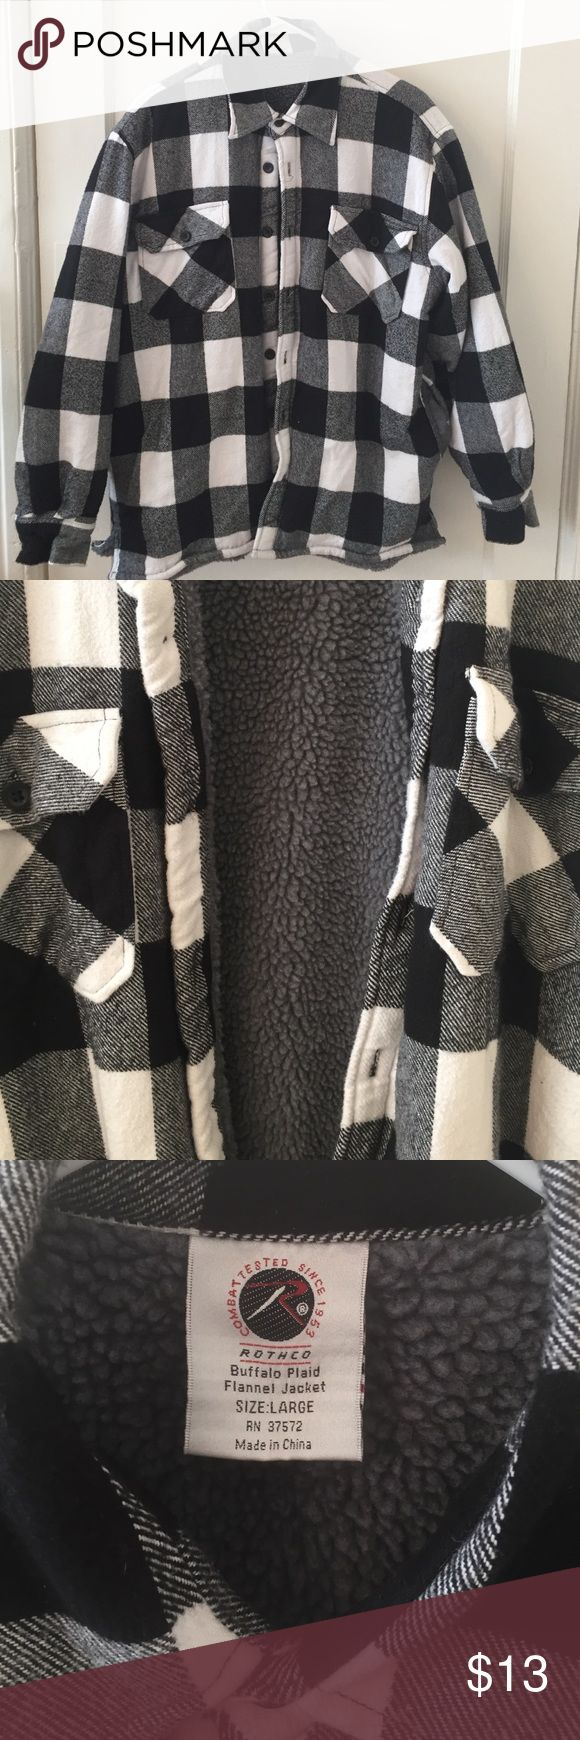 Plaid Flannel Jacket Oversized flannels jacket. Super comfy and warm! In great condition! Can fit a S/M Jackets & Coats